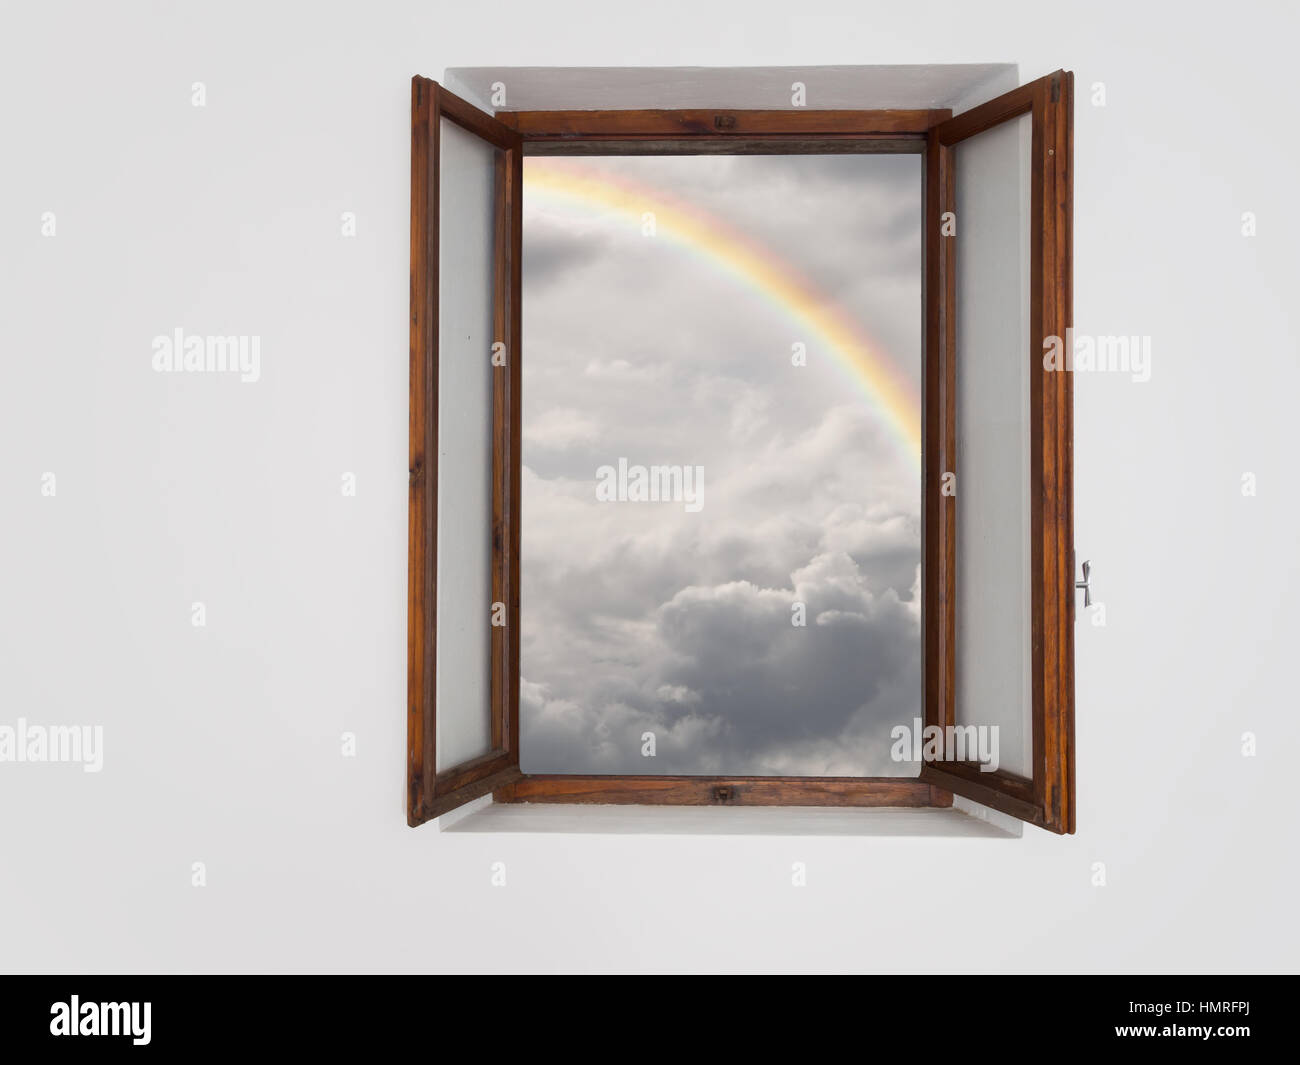 Window onto better times. Clouds but with rainbow. - Stock Image